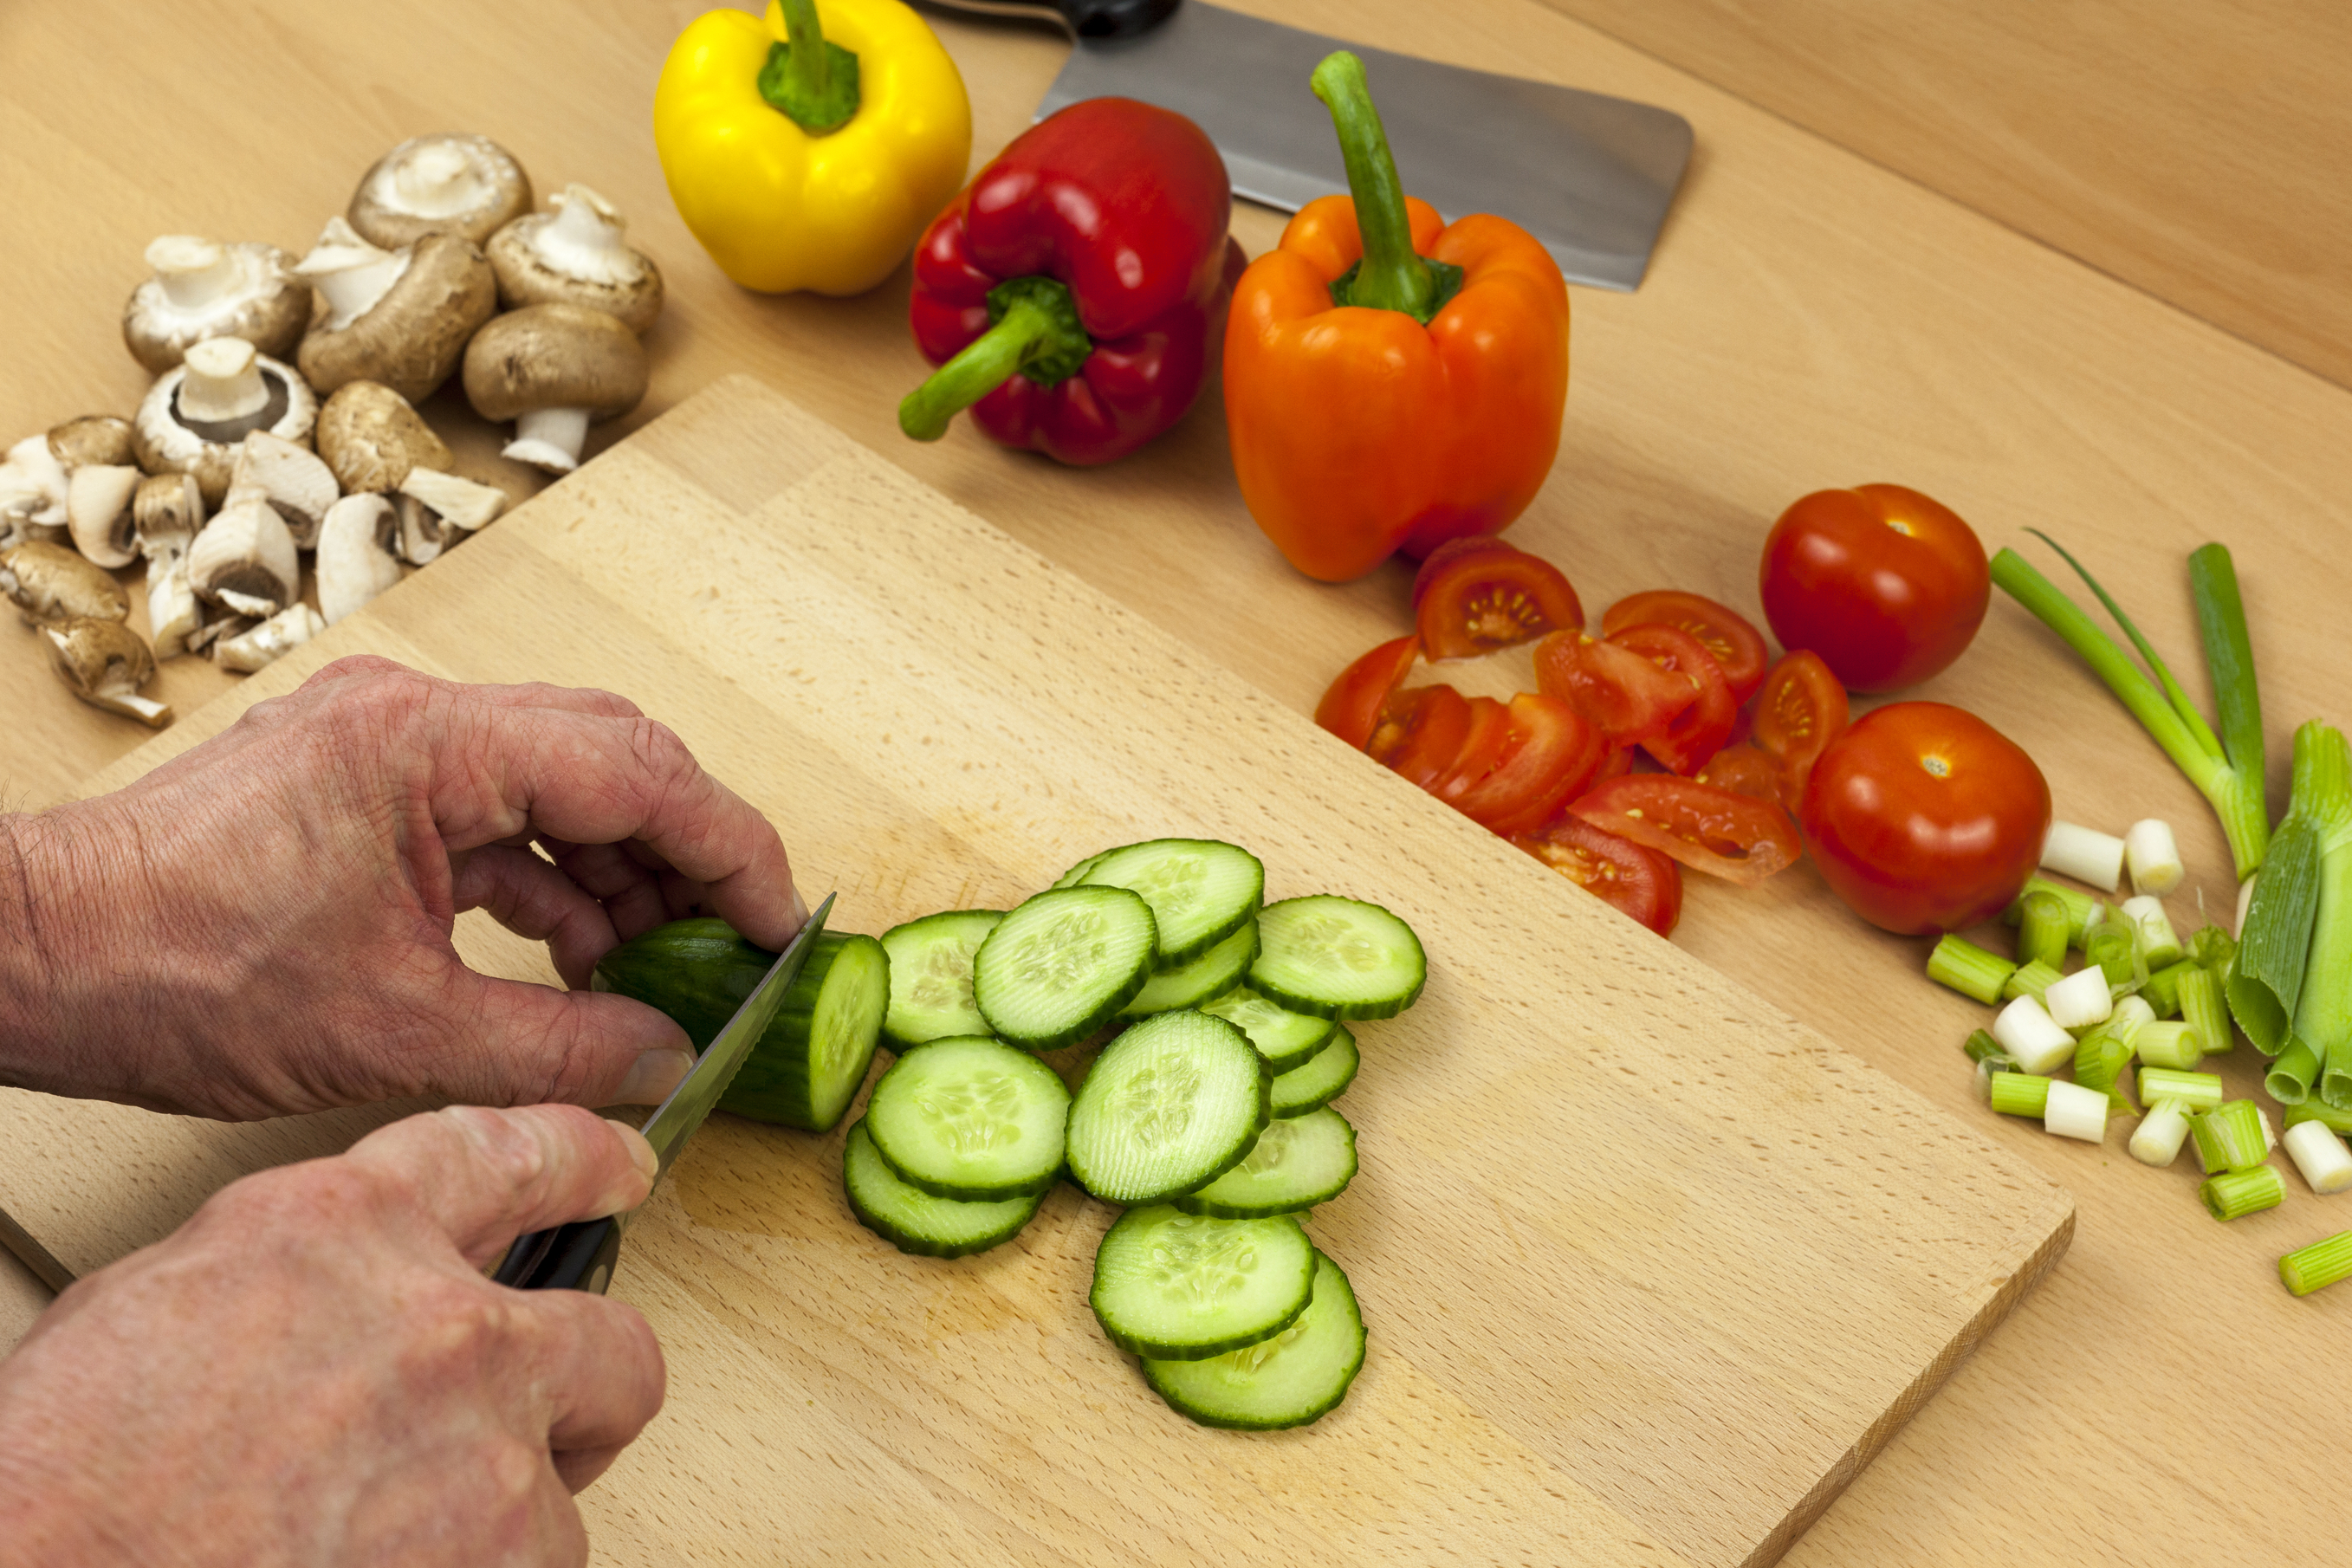 Six Tips to Make Meal Preparation Easier